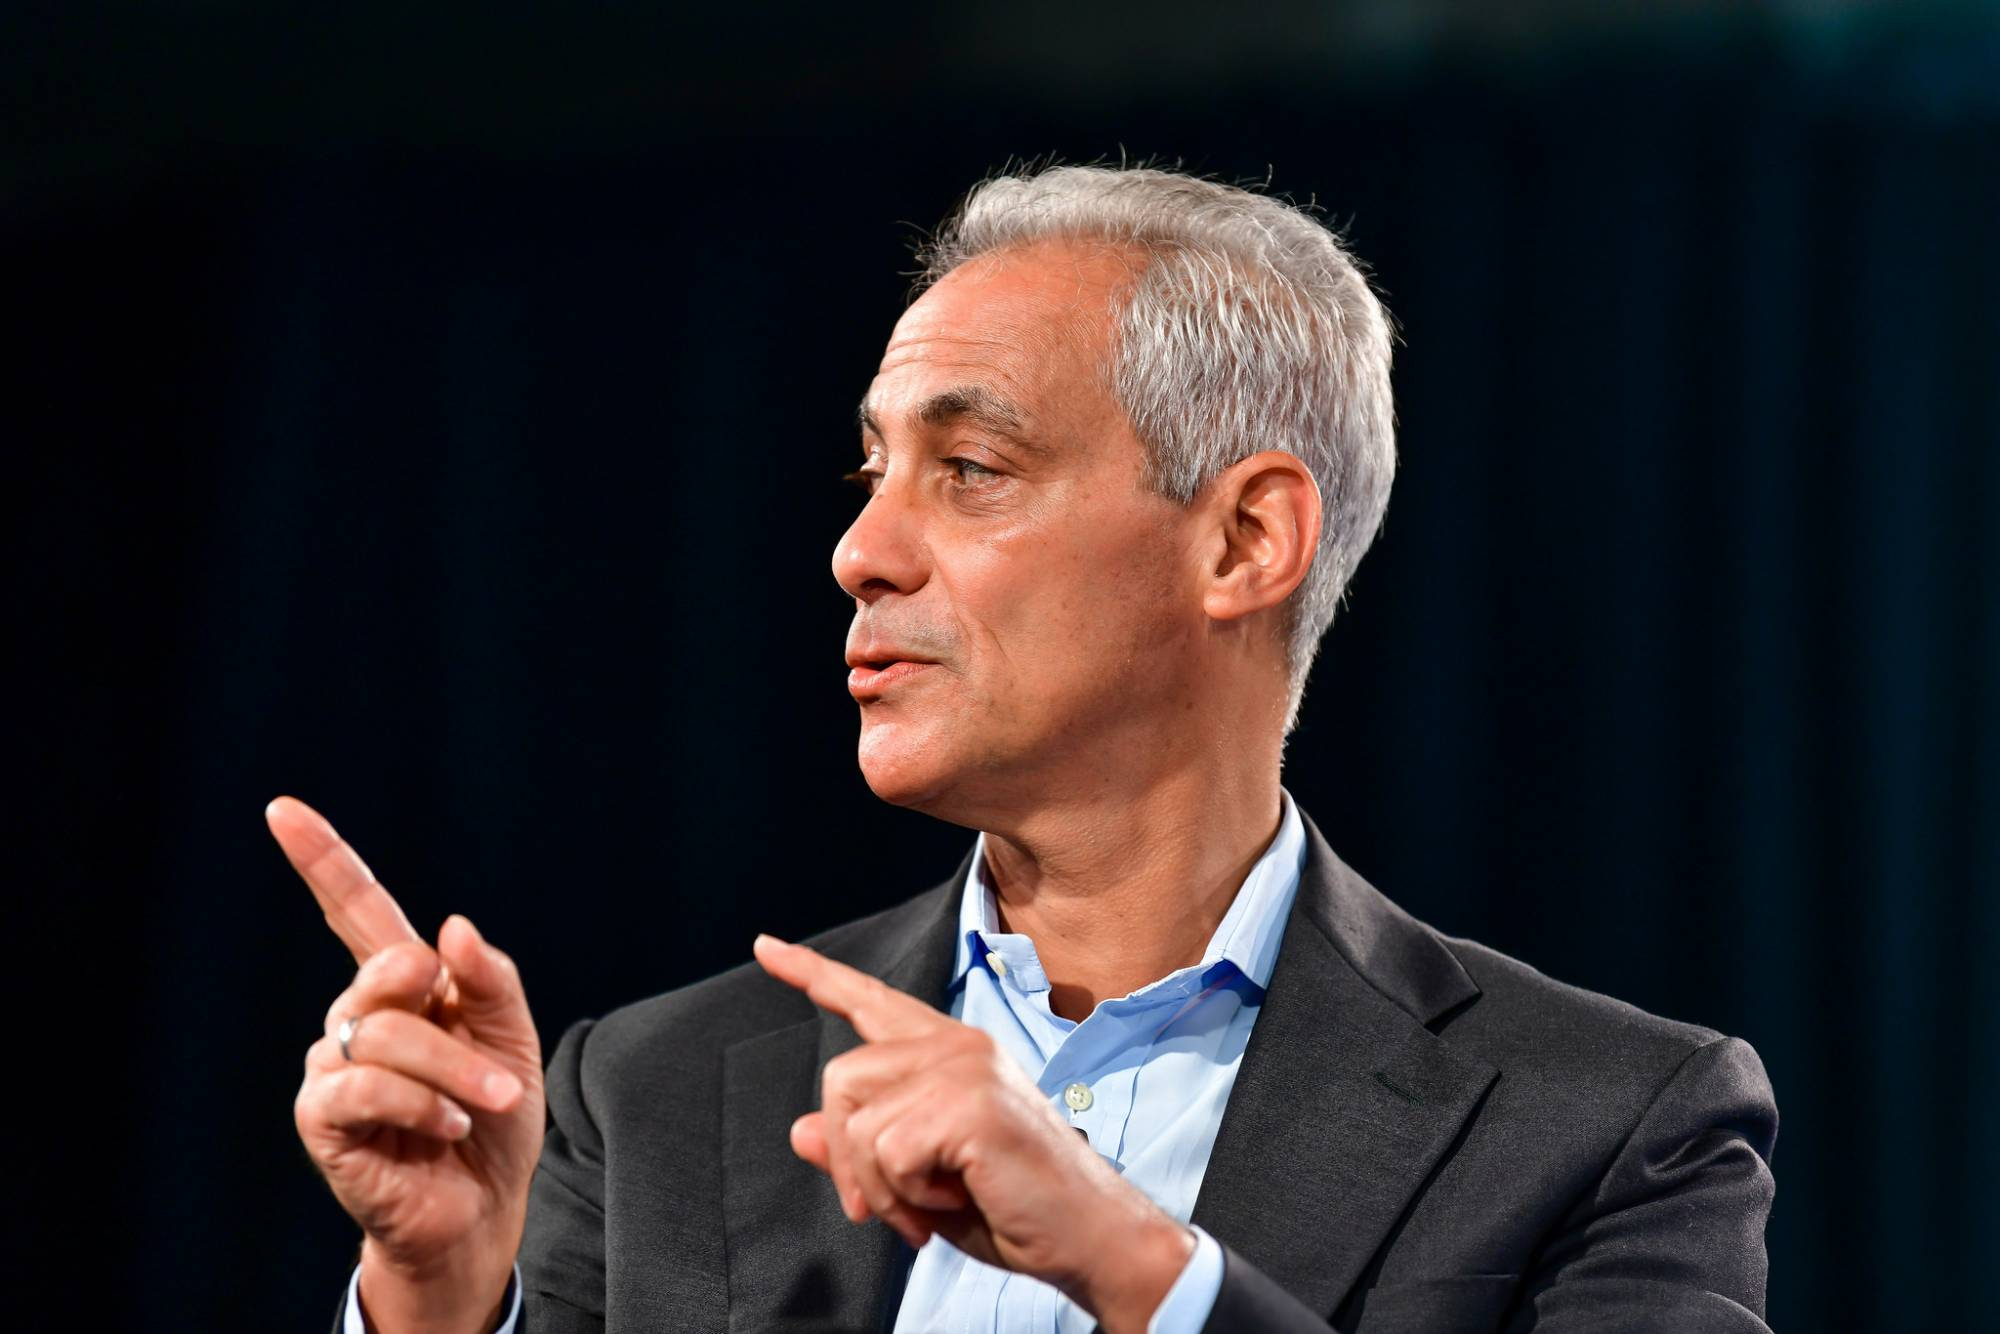 Chicago Mayor Rahm Emanuel at Fortune's Brainstorm Reinvent conference.